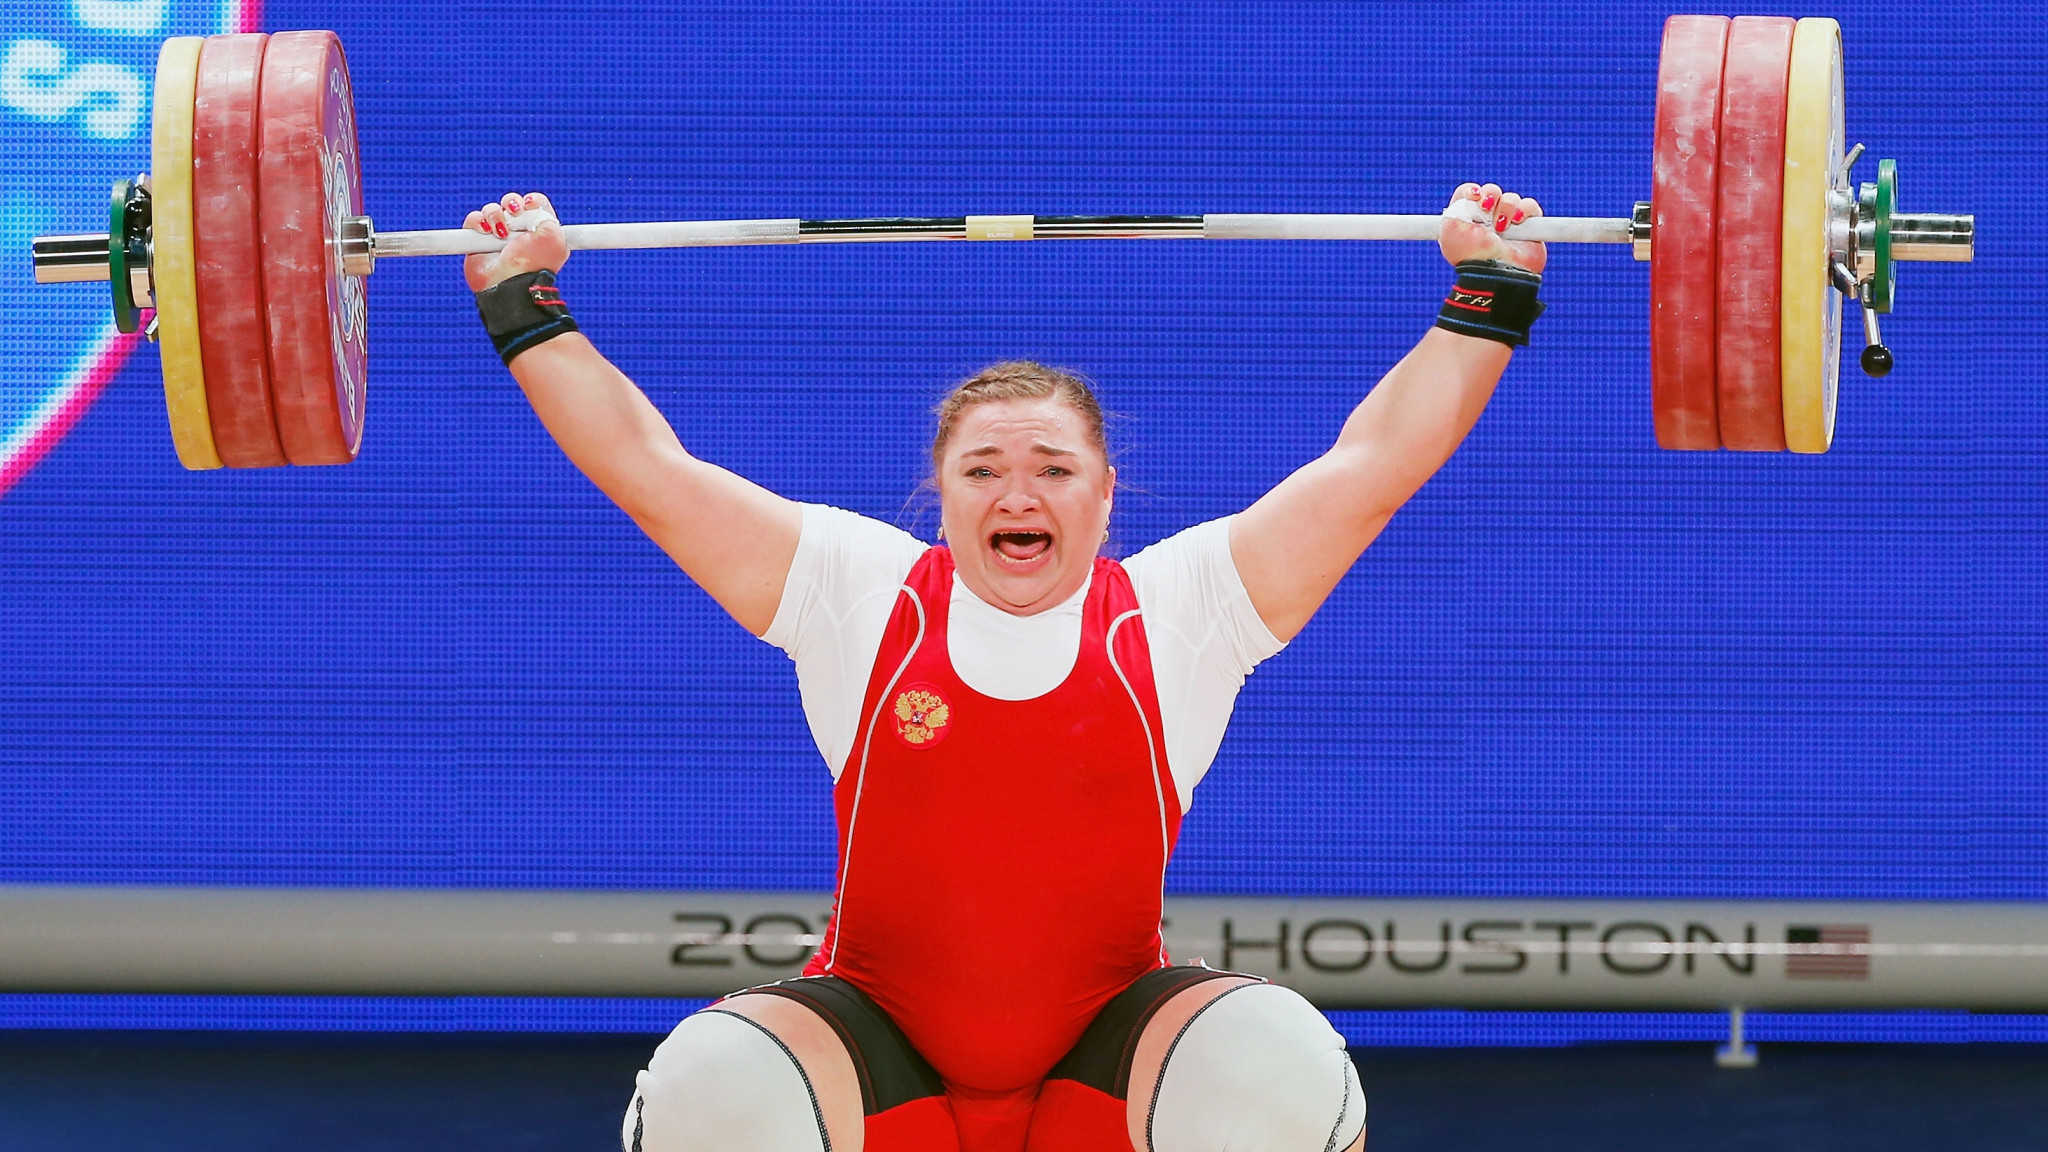 Crackdown on dopers means only two Tokyo 2020 weightlifting slots for Russia, Kazakhstan and others